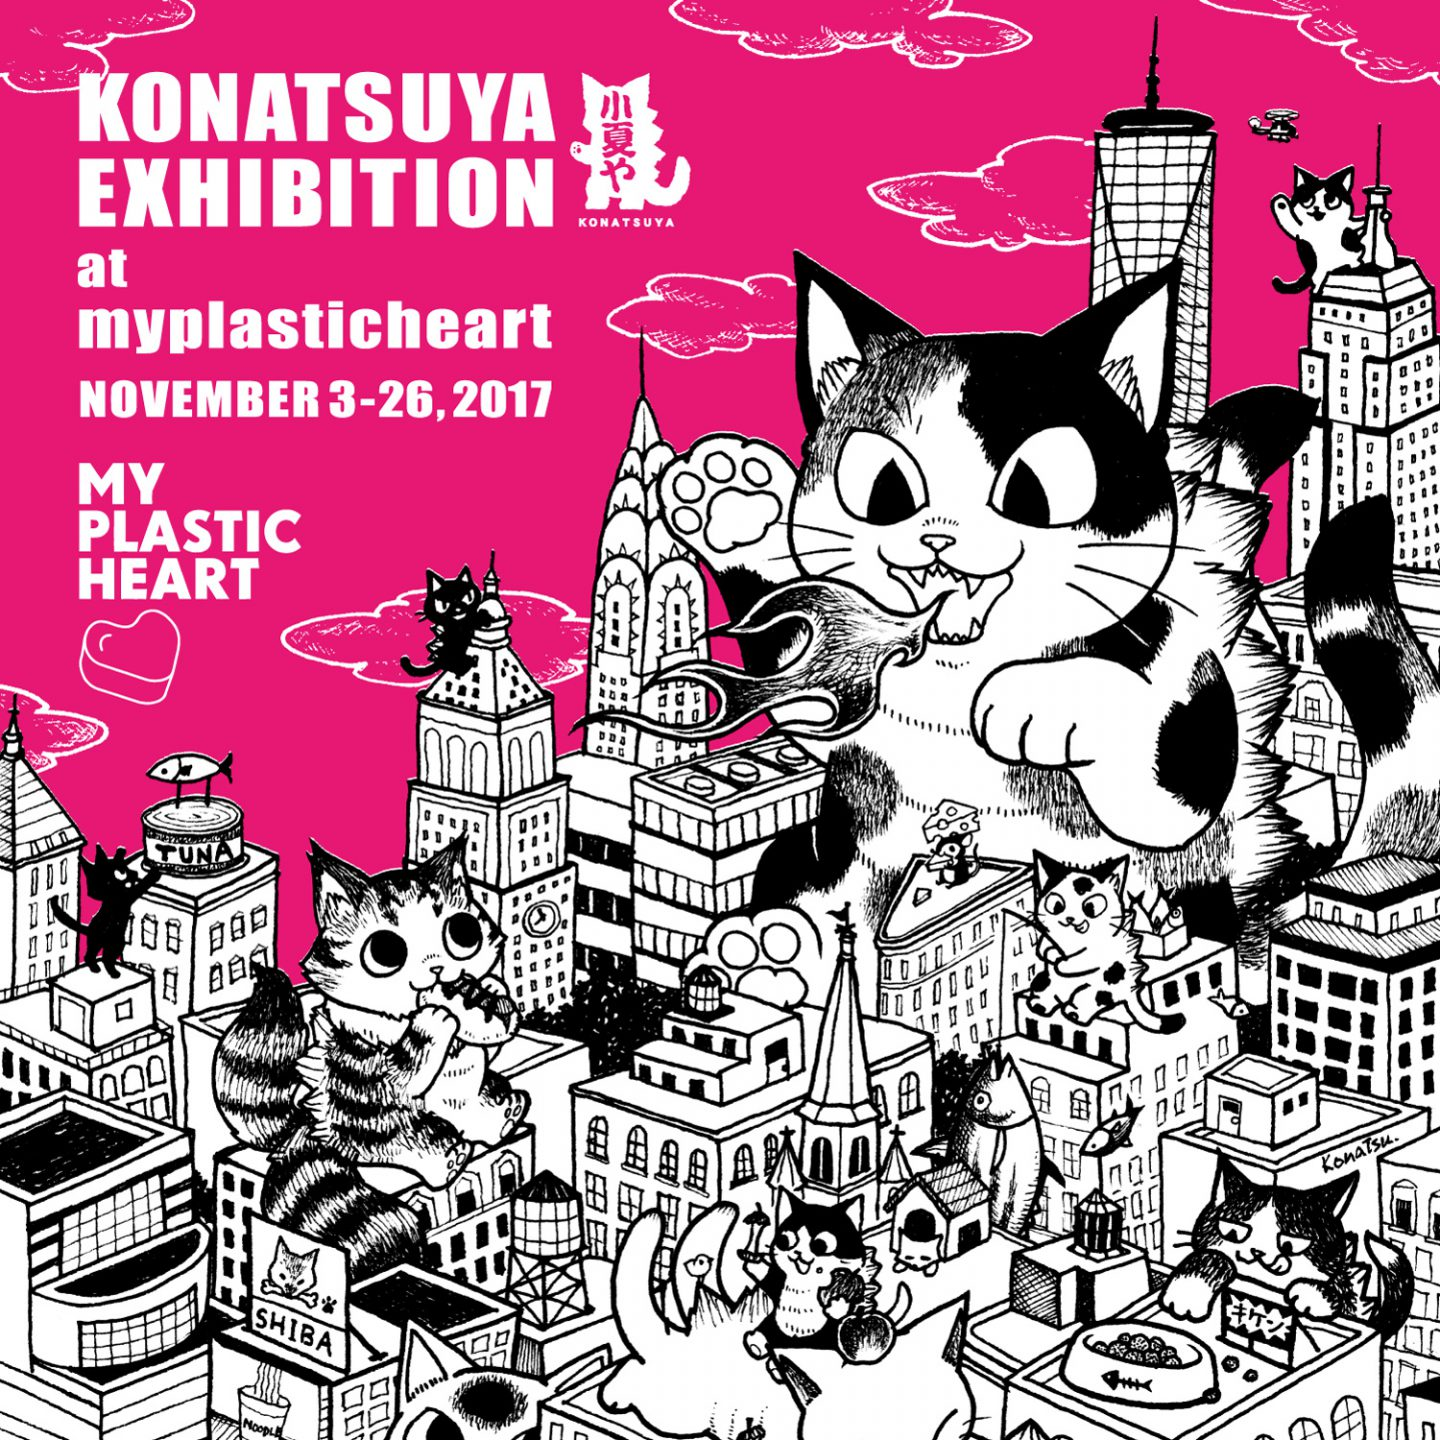 Konatsuya Exhibition opens Nov. 3rd